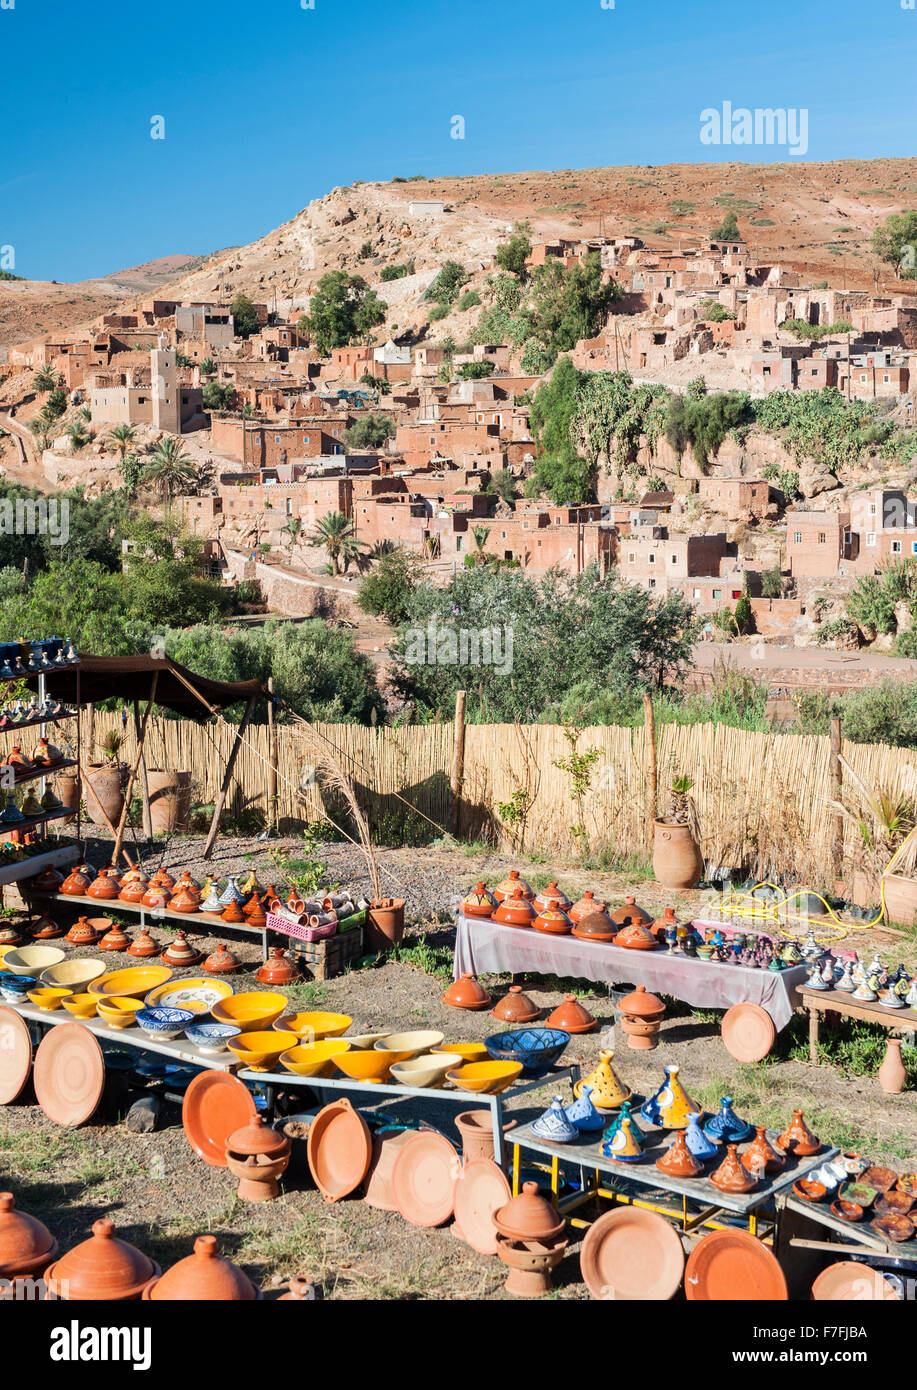 Pottery and curios for sale near Asni village in the Atlas mountains of Morocco. - Stock Image